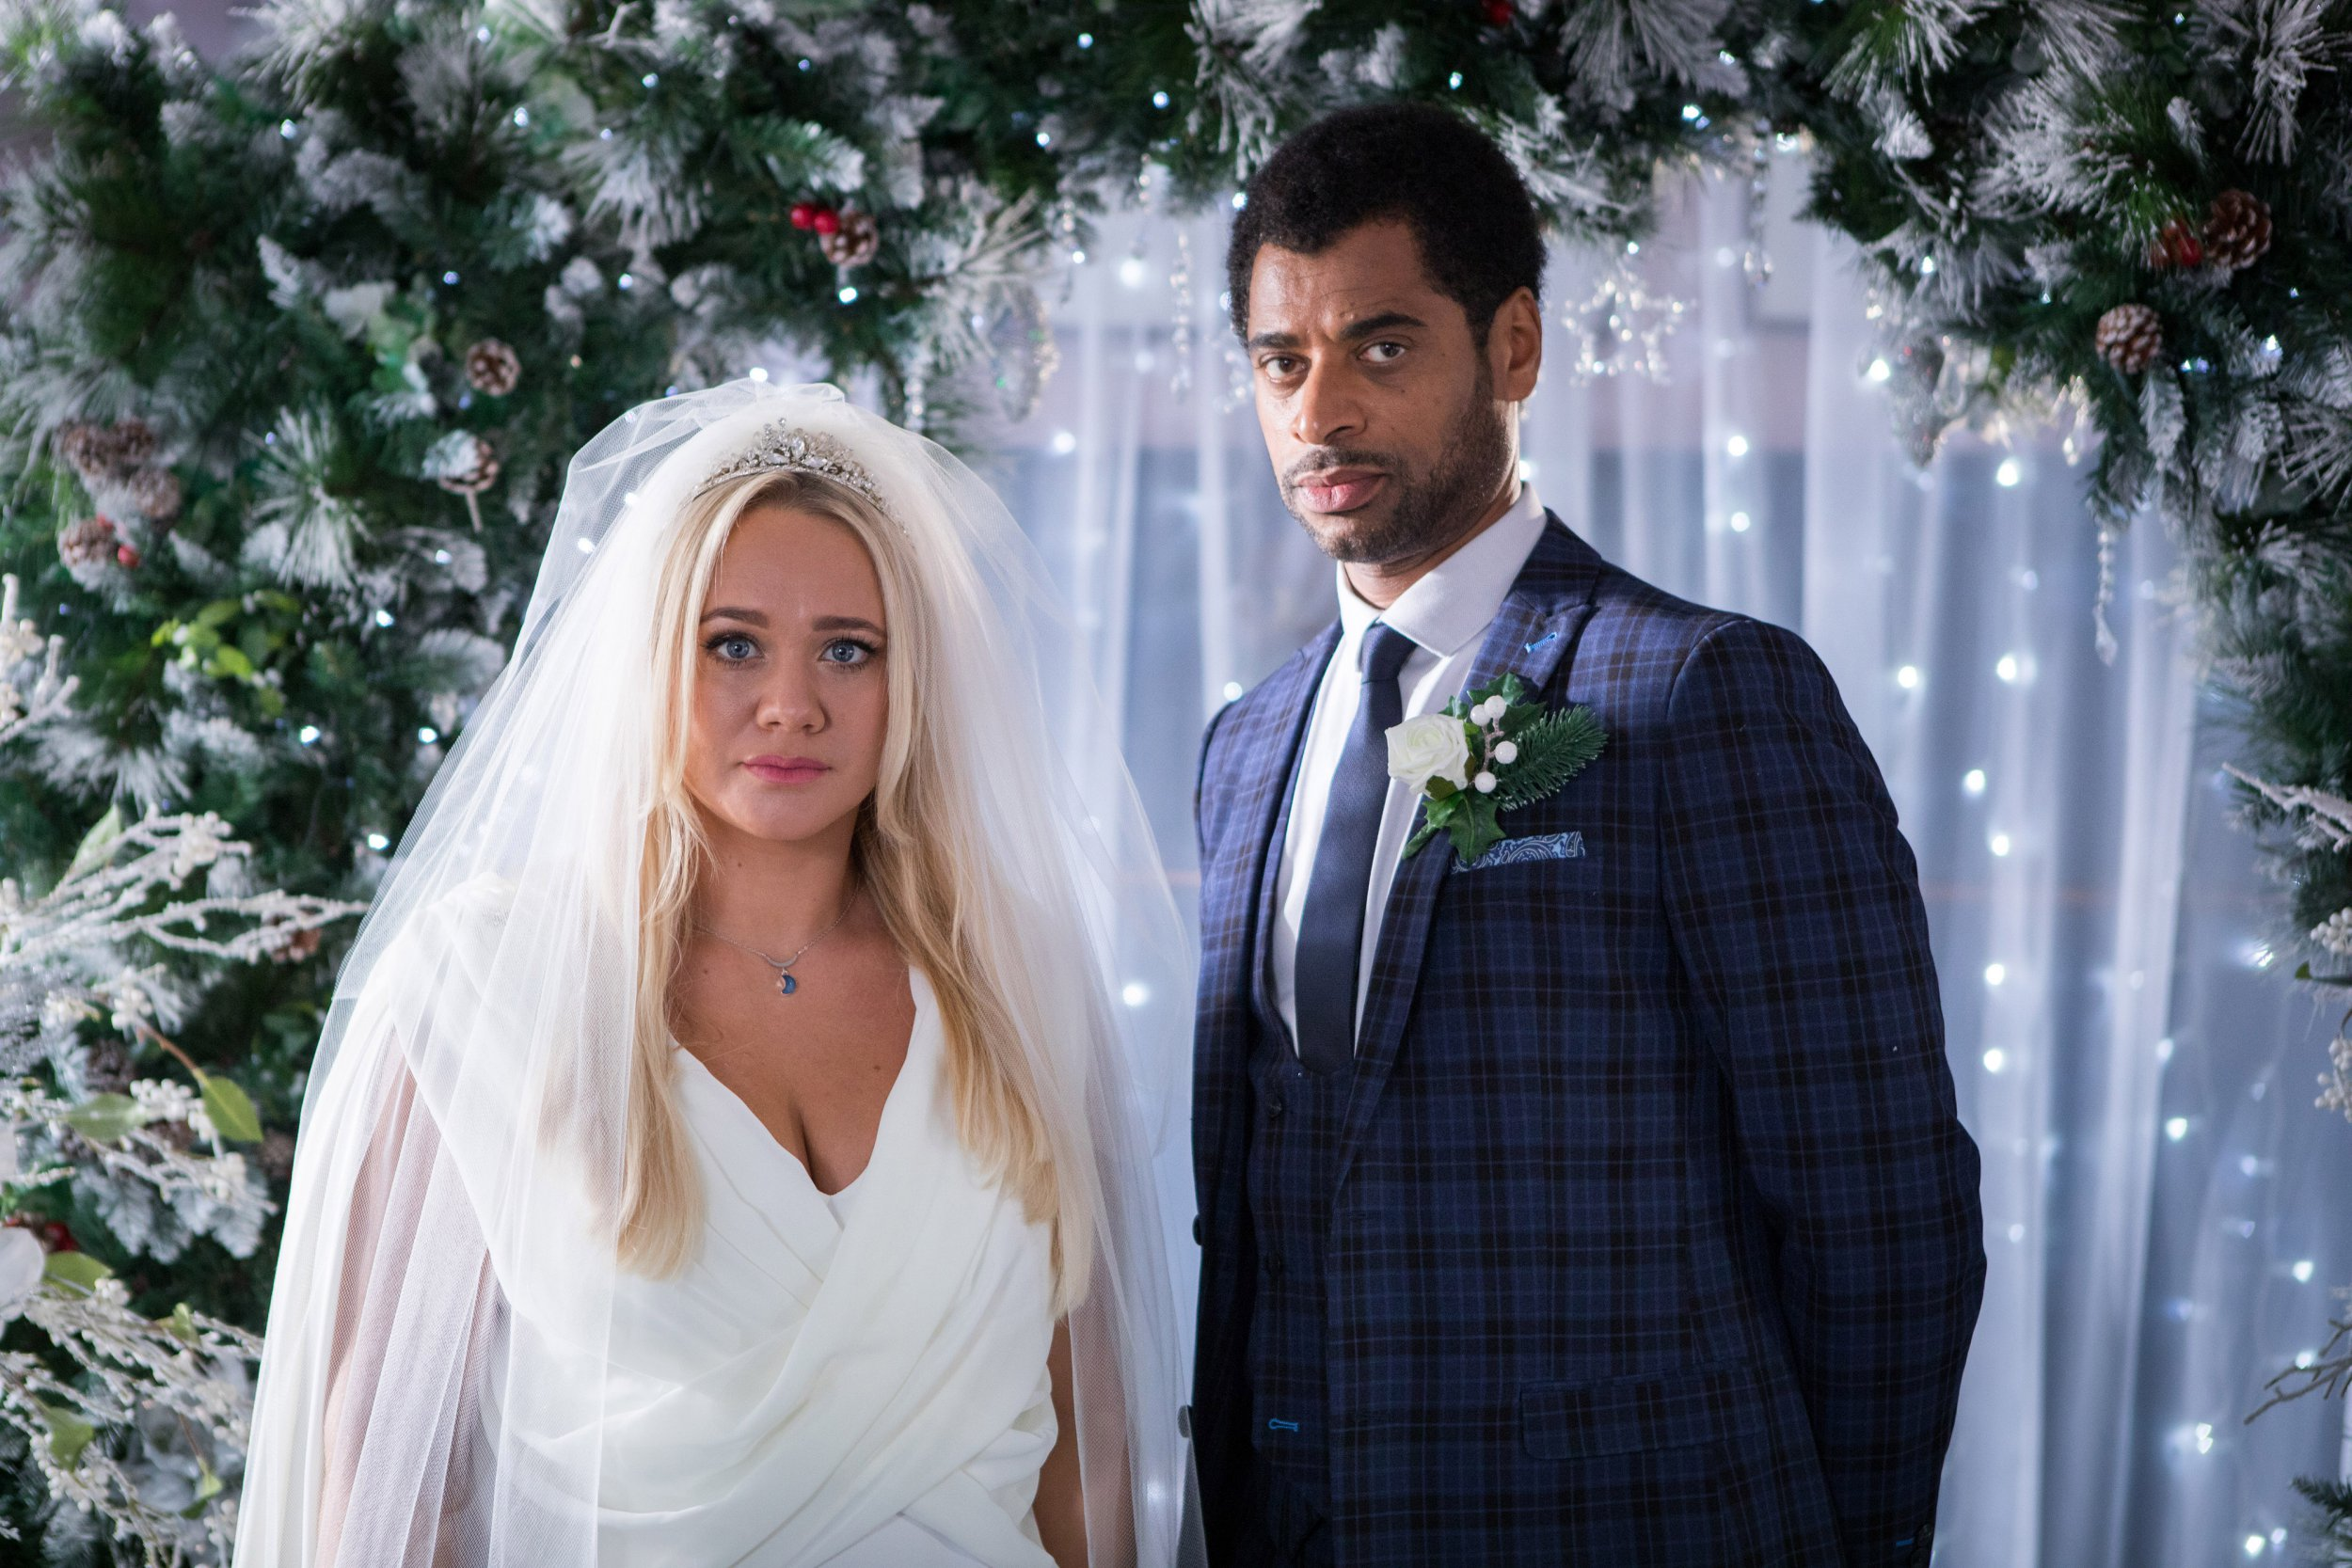 Hollyoaks spoilers: Louis Loveday exposed as wedding descends into violent showdown